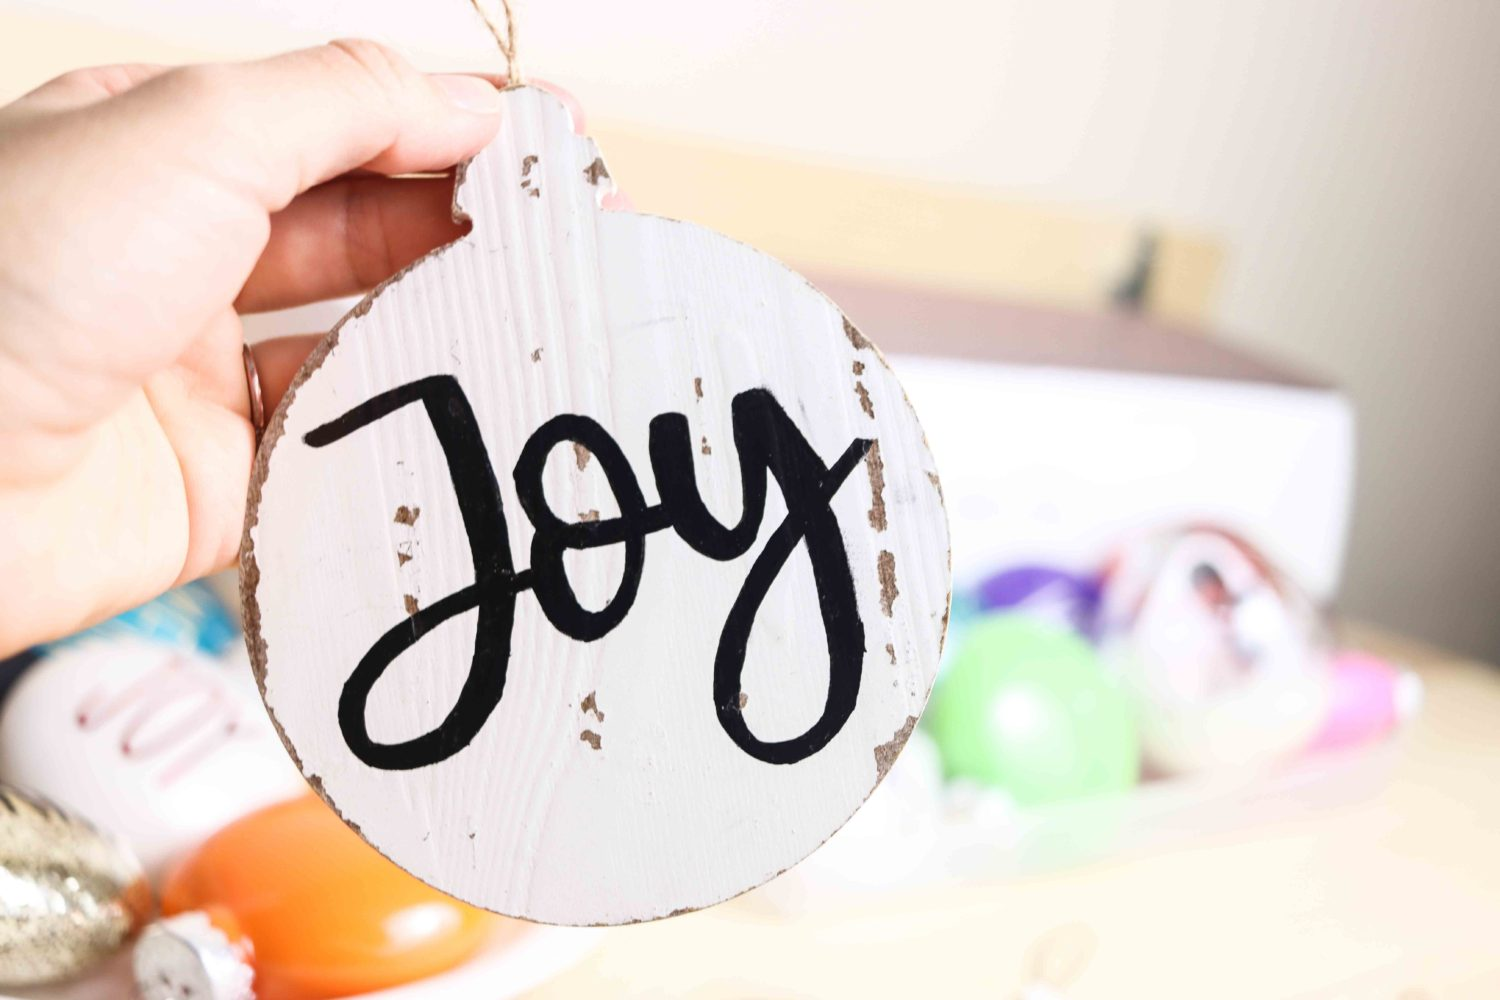 Painting wooden Christmas Ornament  with paint marker